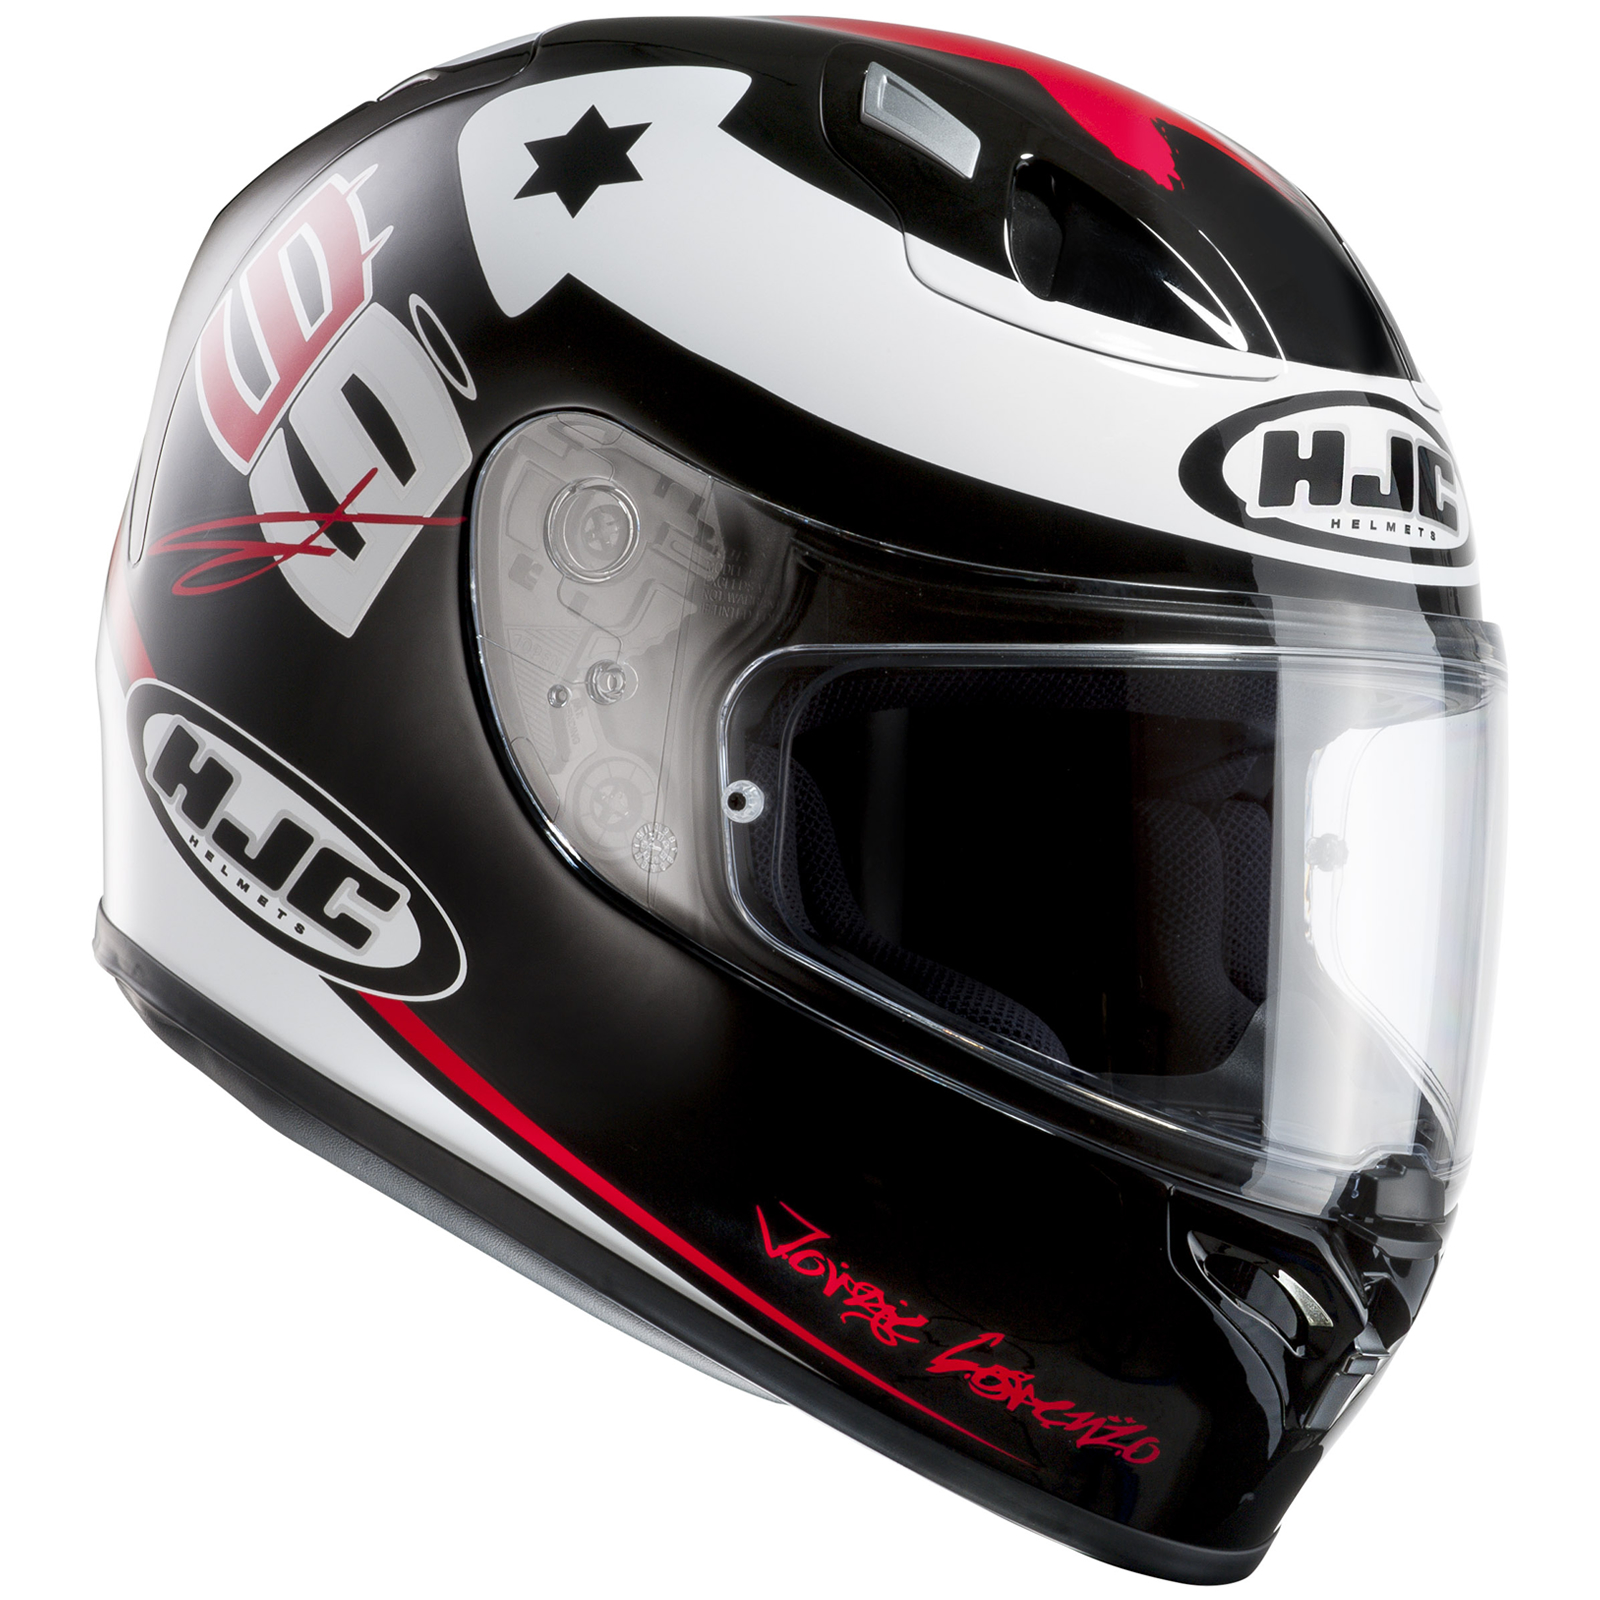 hjc fg 17 x fuera jorge lorenzo black white red motorcycle helmet replica acu ebay. Black Bedroom Furniture Sets. Home Design Ideas